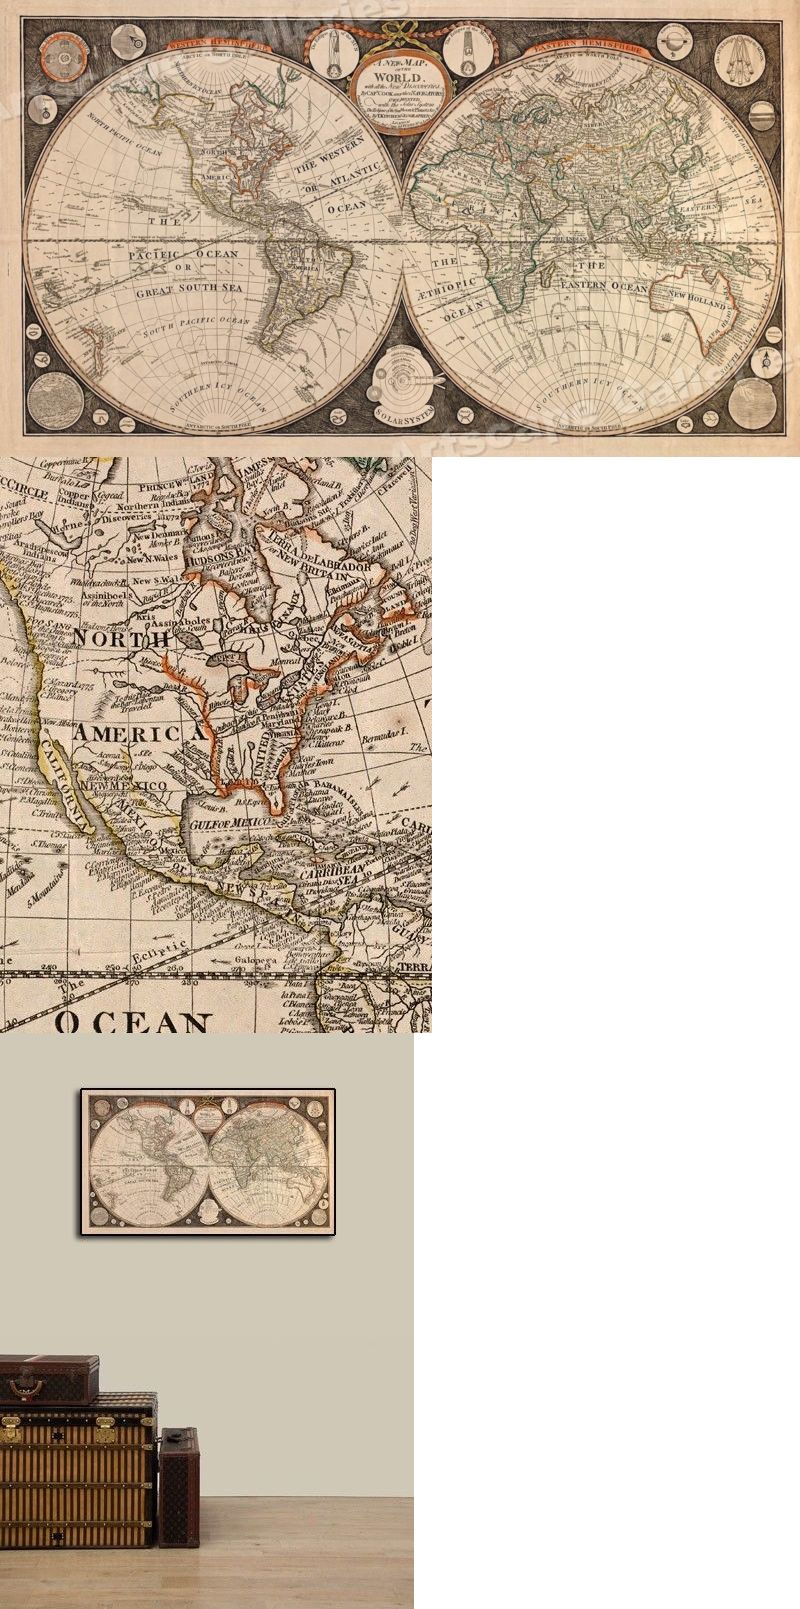 Cook Discoveries by Capt 14x24 1799 Historic World Vintage Map Poster